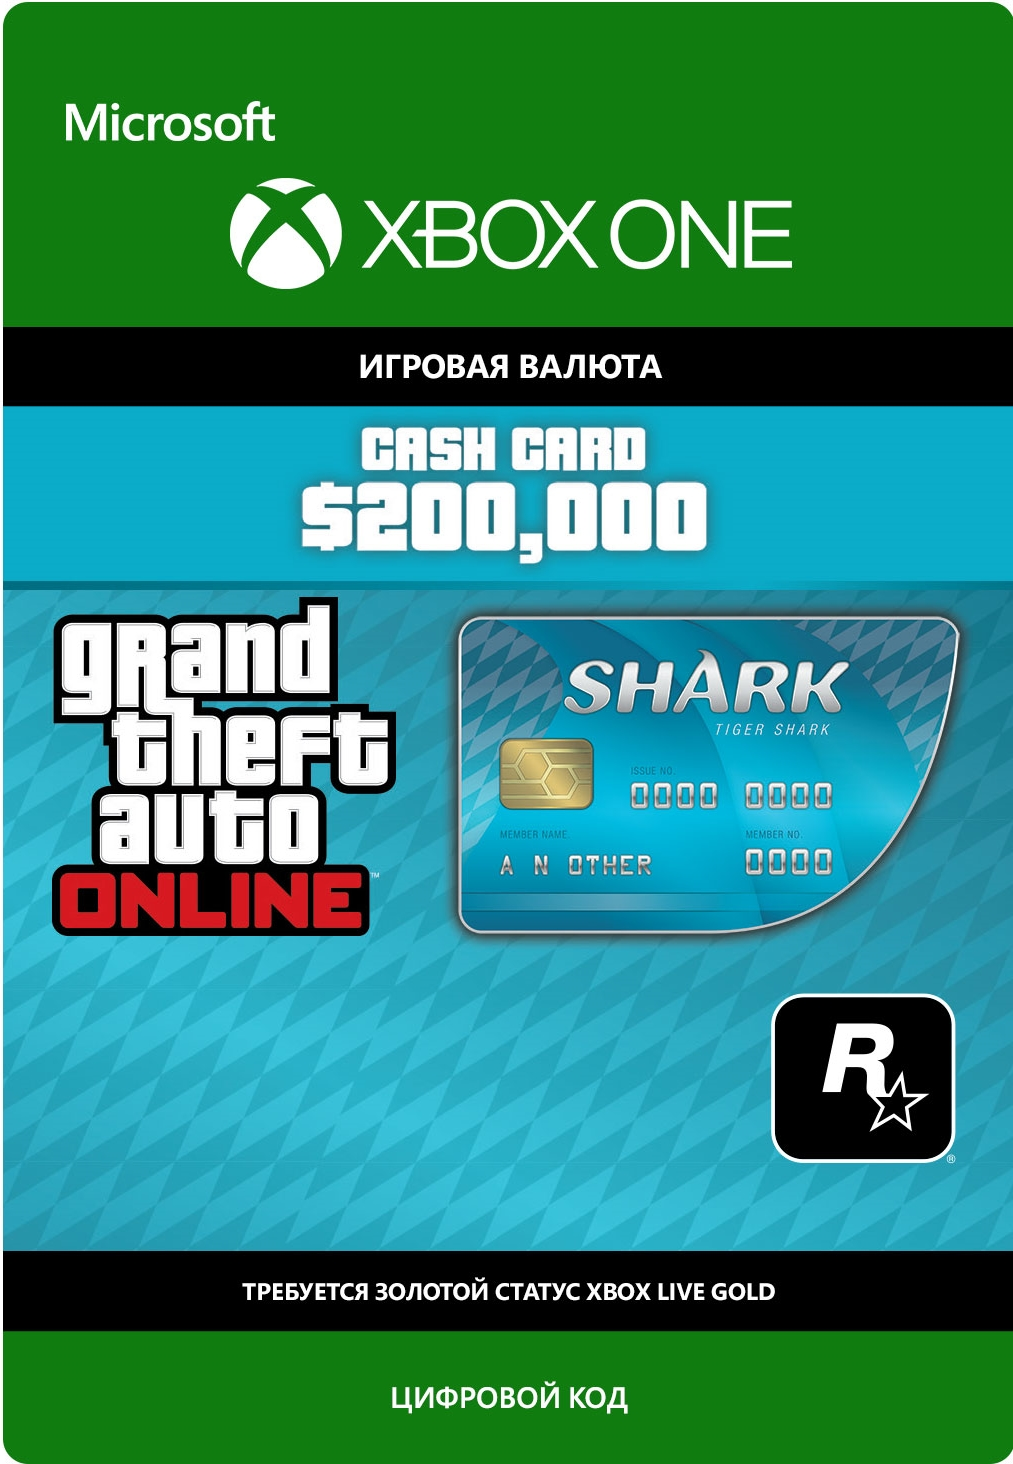 GTA Online: Tiger Shark Cash Card ($200 000) for Xbox